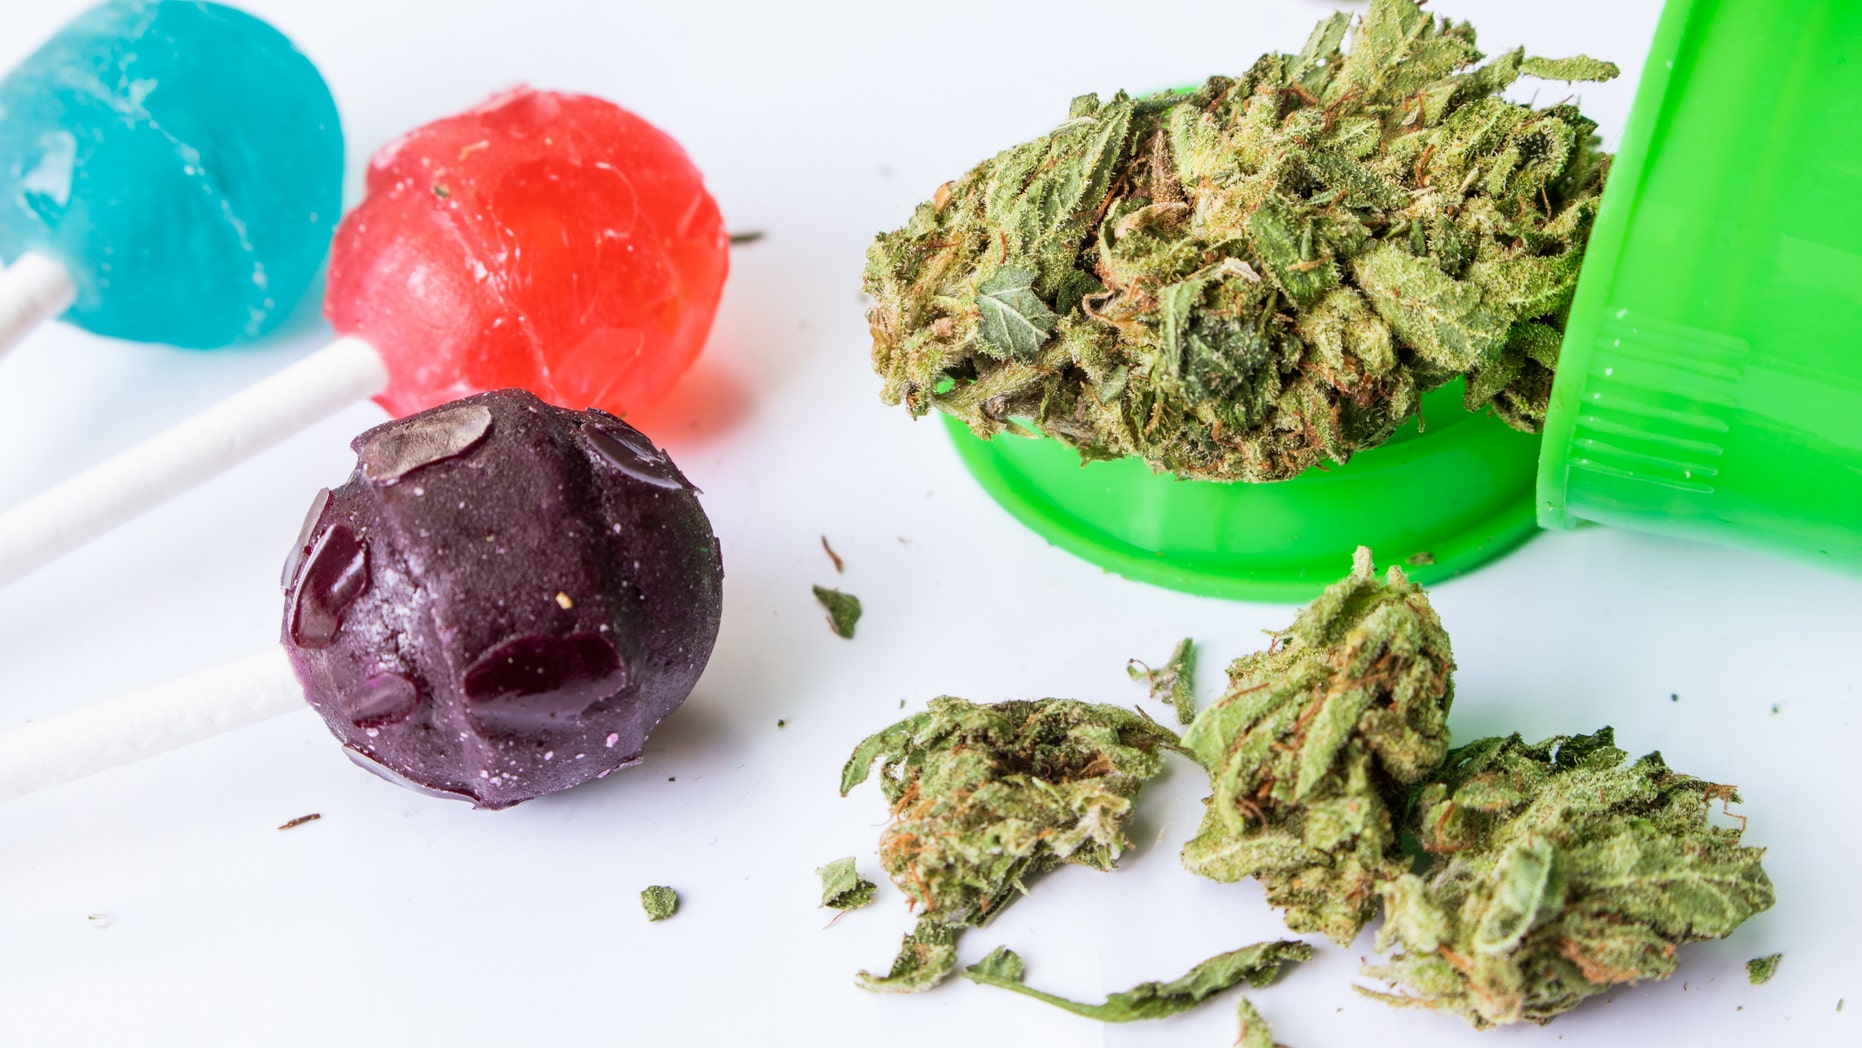 The 70-year-old man decided to tryedible marijuanato see if it would reduce the pain from his osteoarthritis and help him sleep.